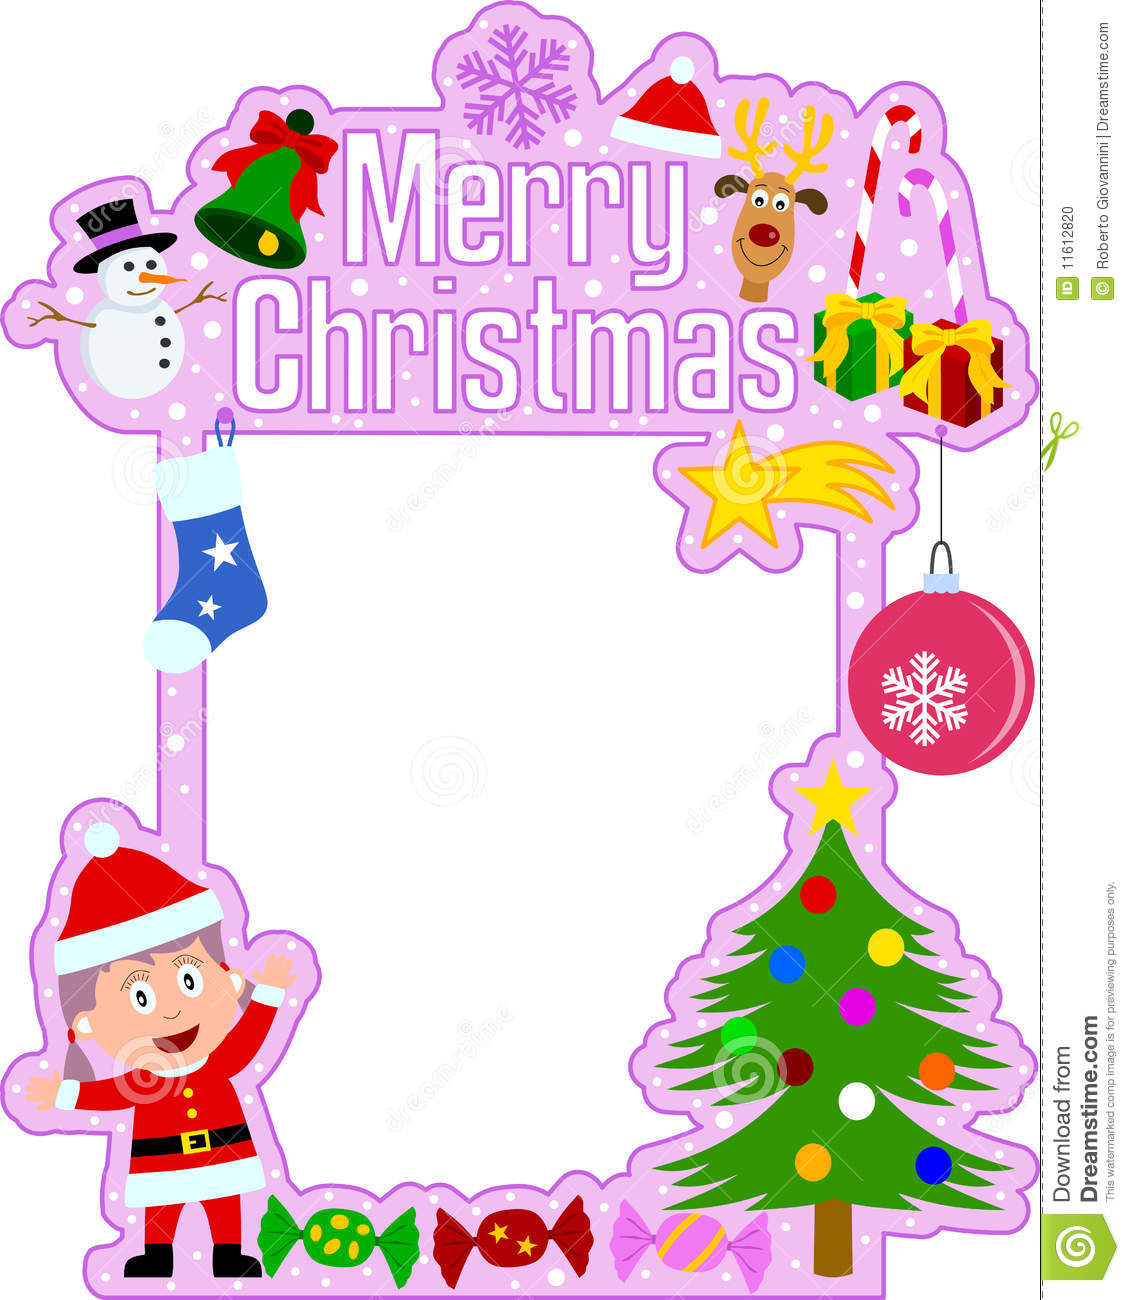 Superb A Funny Merry Christmas Frame With Christmas Elements And A Girl Dressed As  Santa Claus. Useful Also For Scrapbook, Post Card Or Photo Frame.